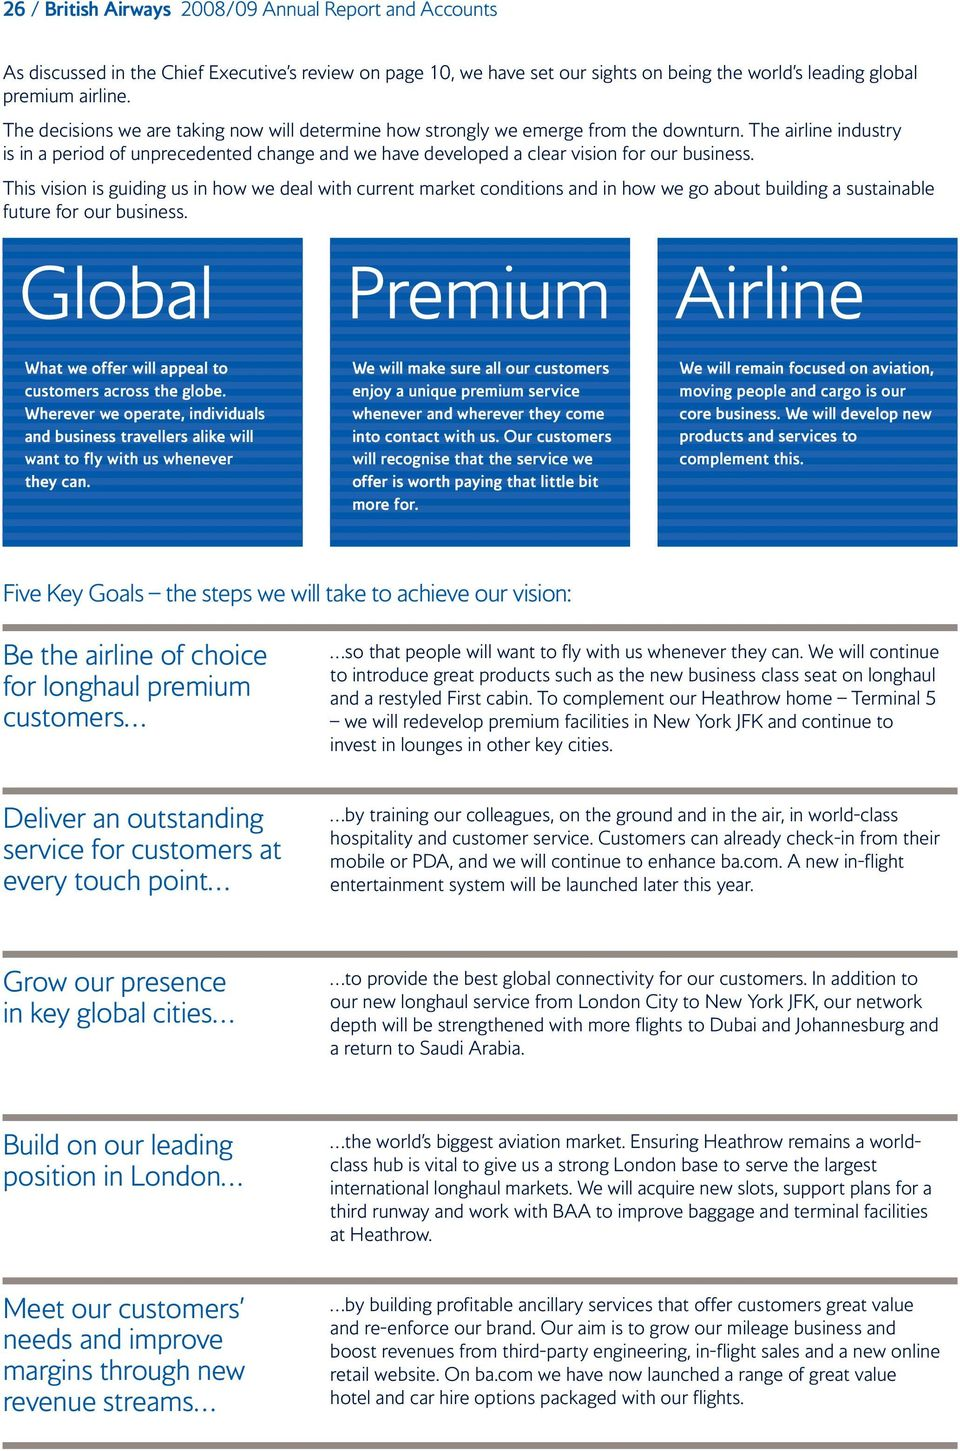 The airline industry is in a period of unprecedented change and we have developed a clear vision for our business.